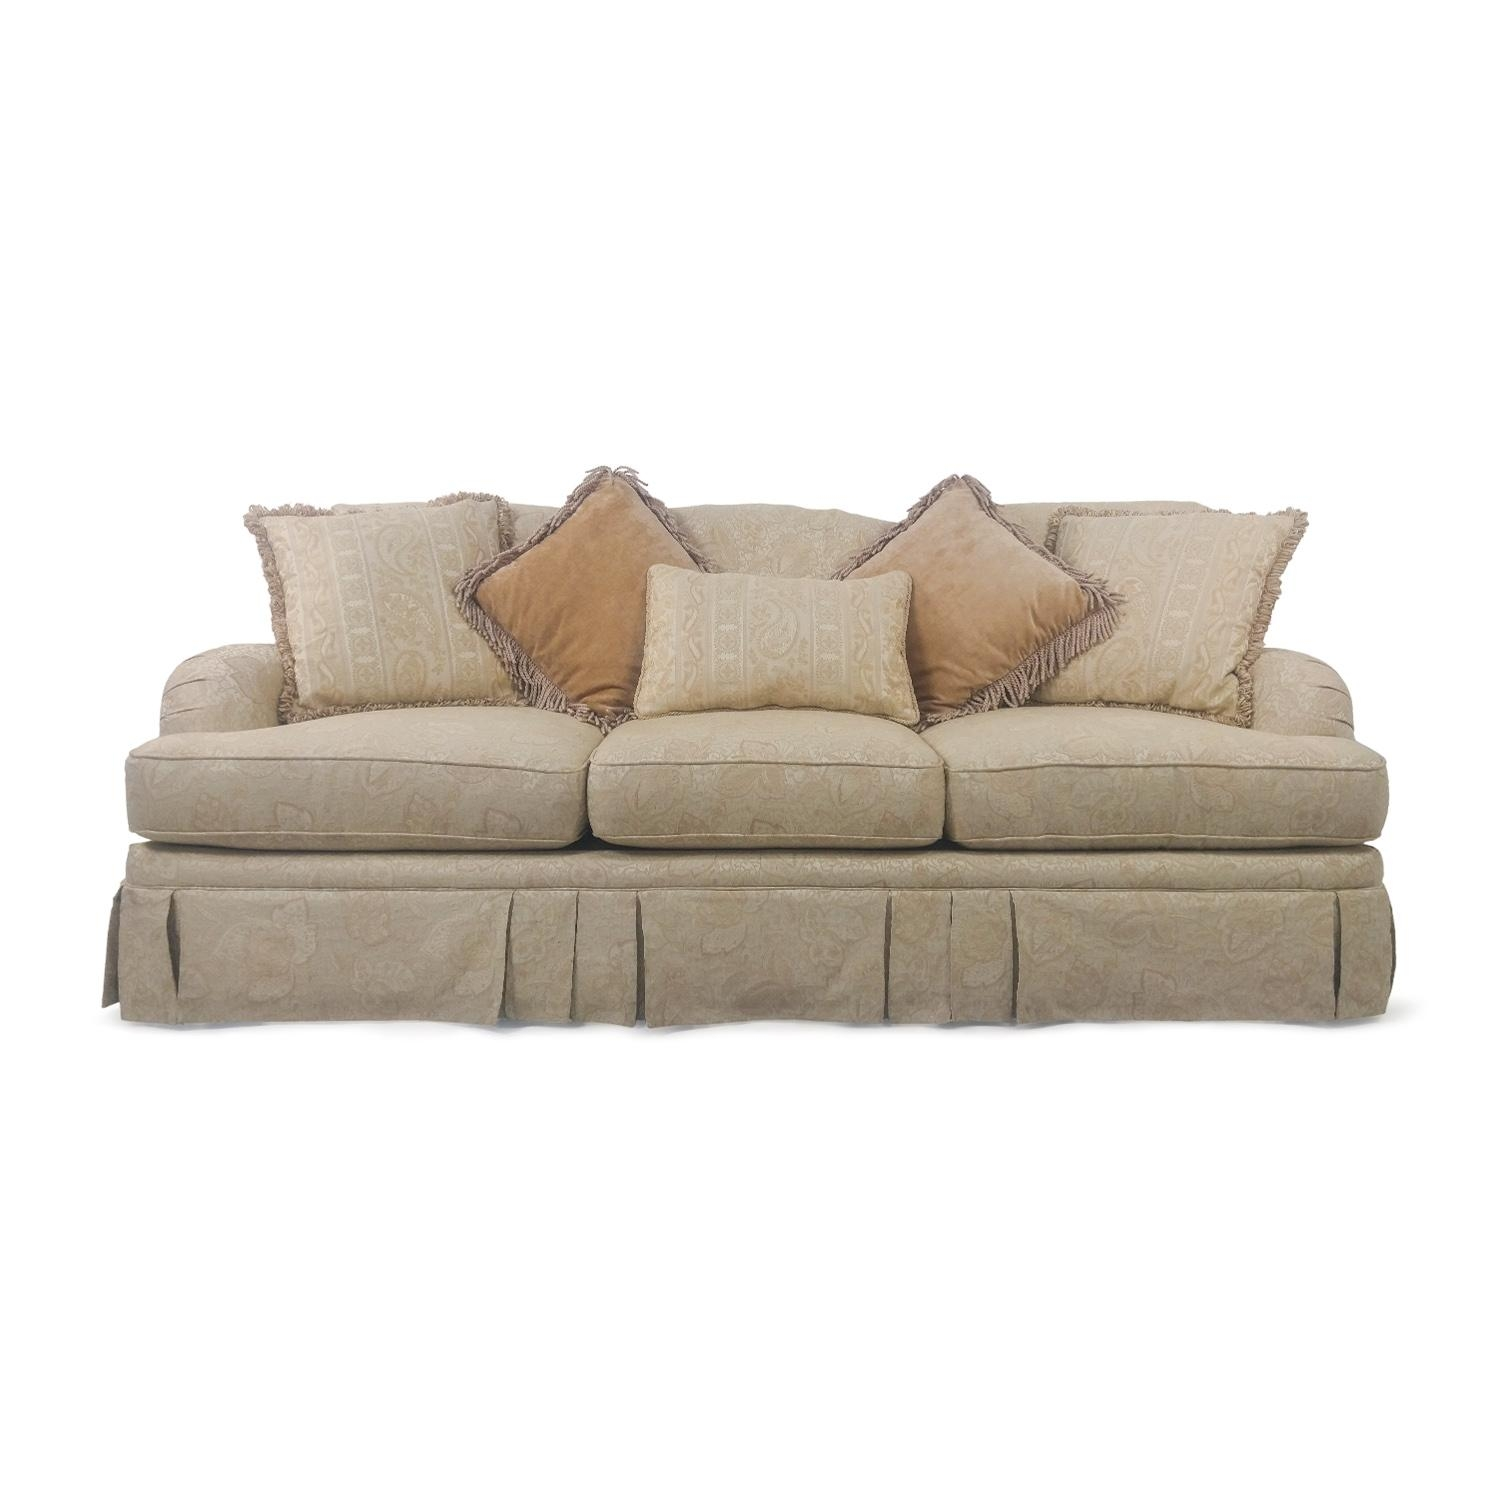 20 inspirations classic sofas for sale sofa ideas for Classic loveseat